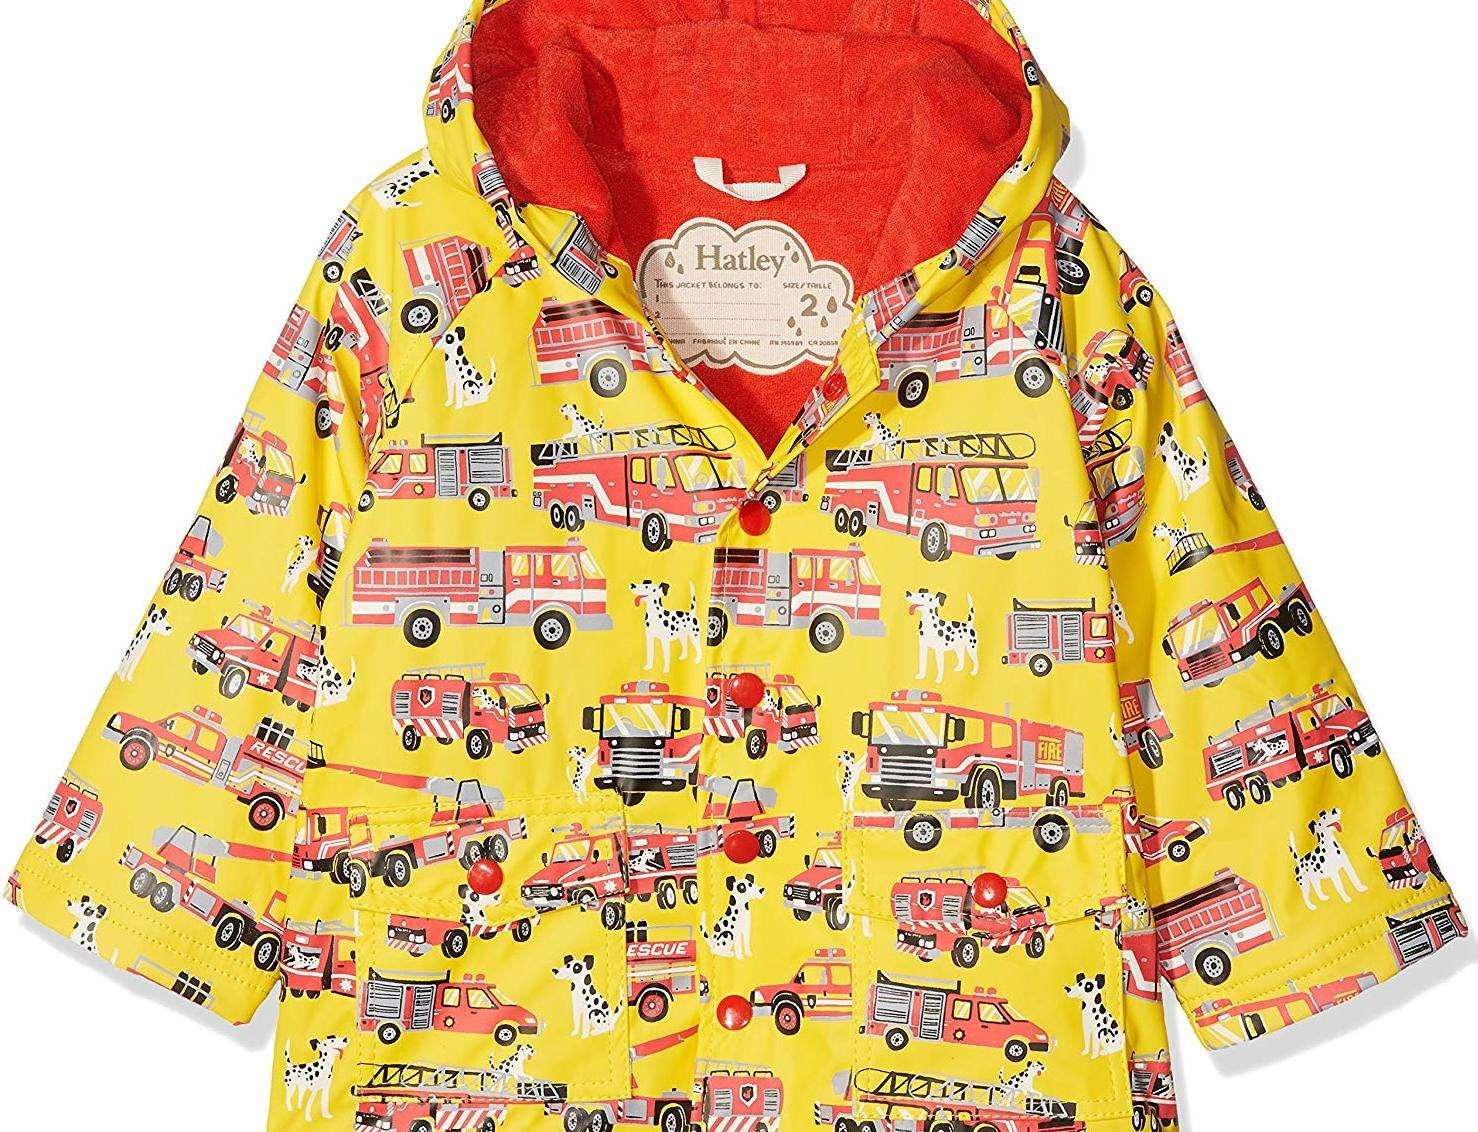 A Hatley Boy's printed rain jacket is on sale at a cut price on Amazon